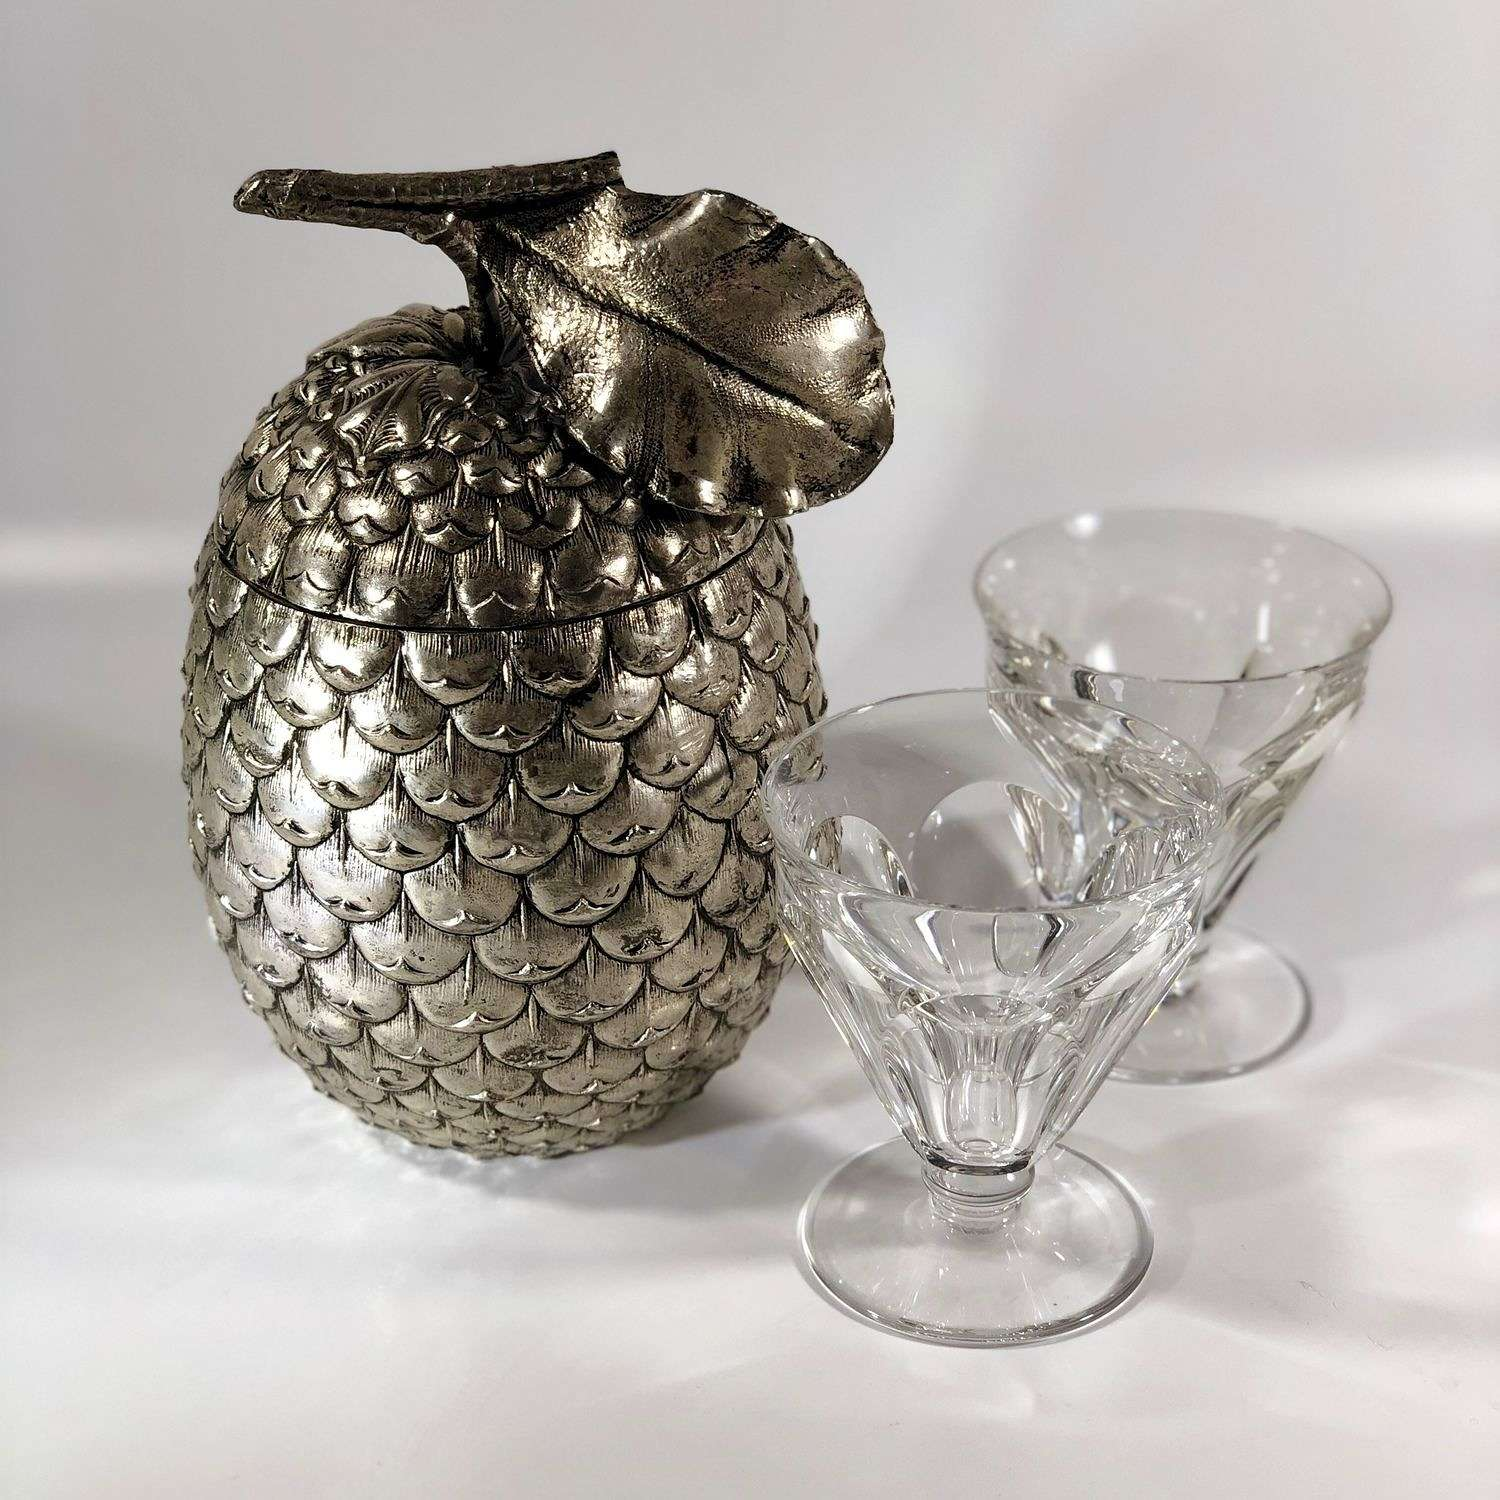 Mauro Manetti Acorn ice bucket